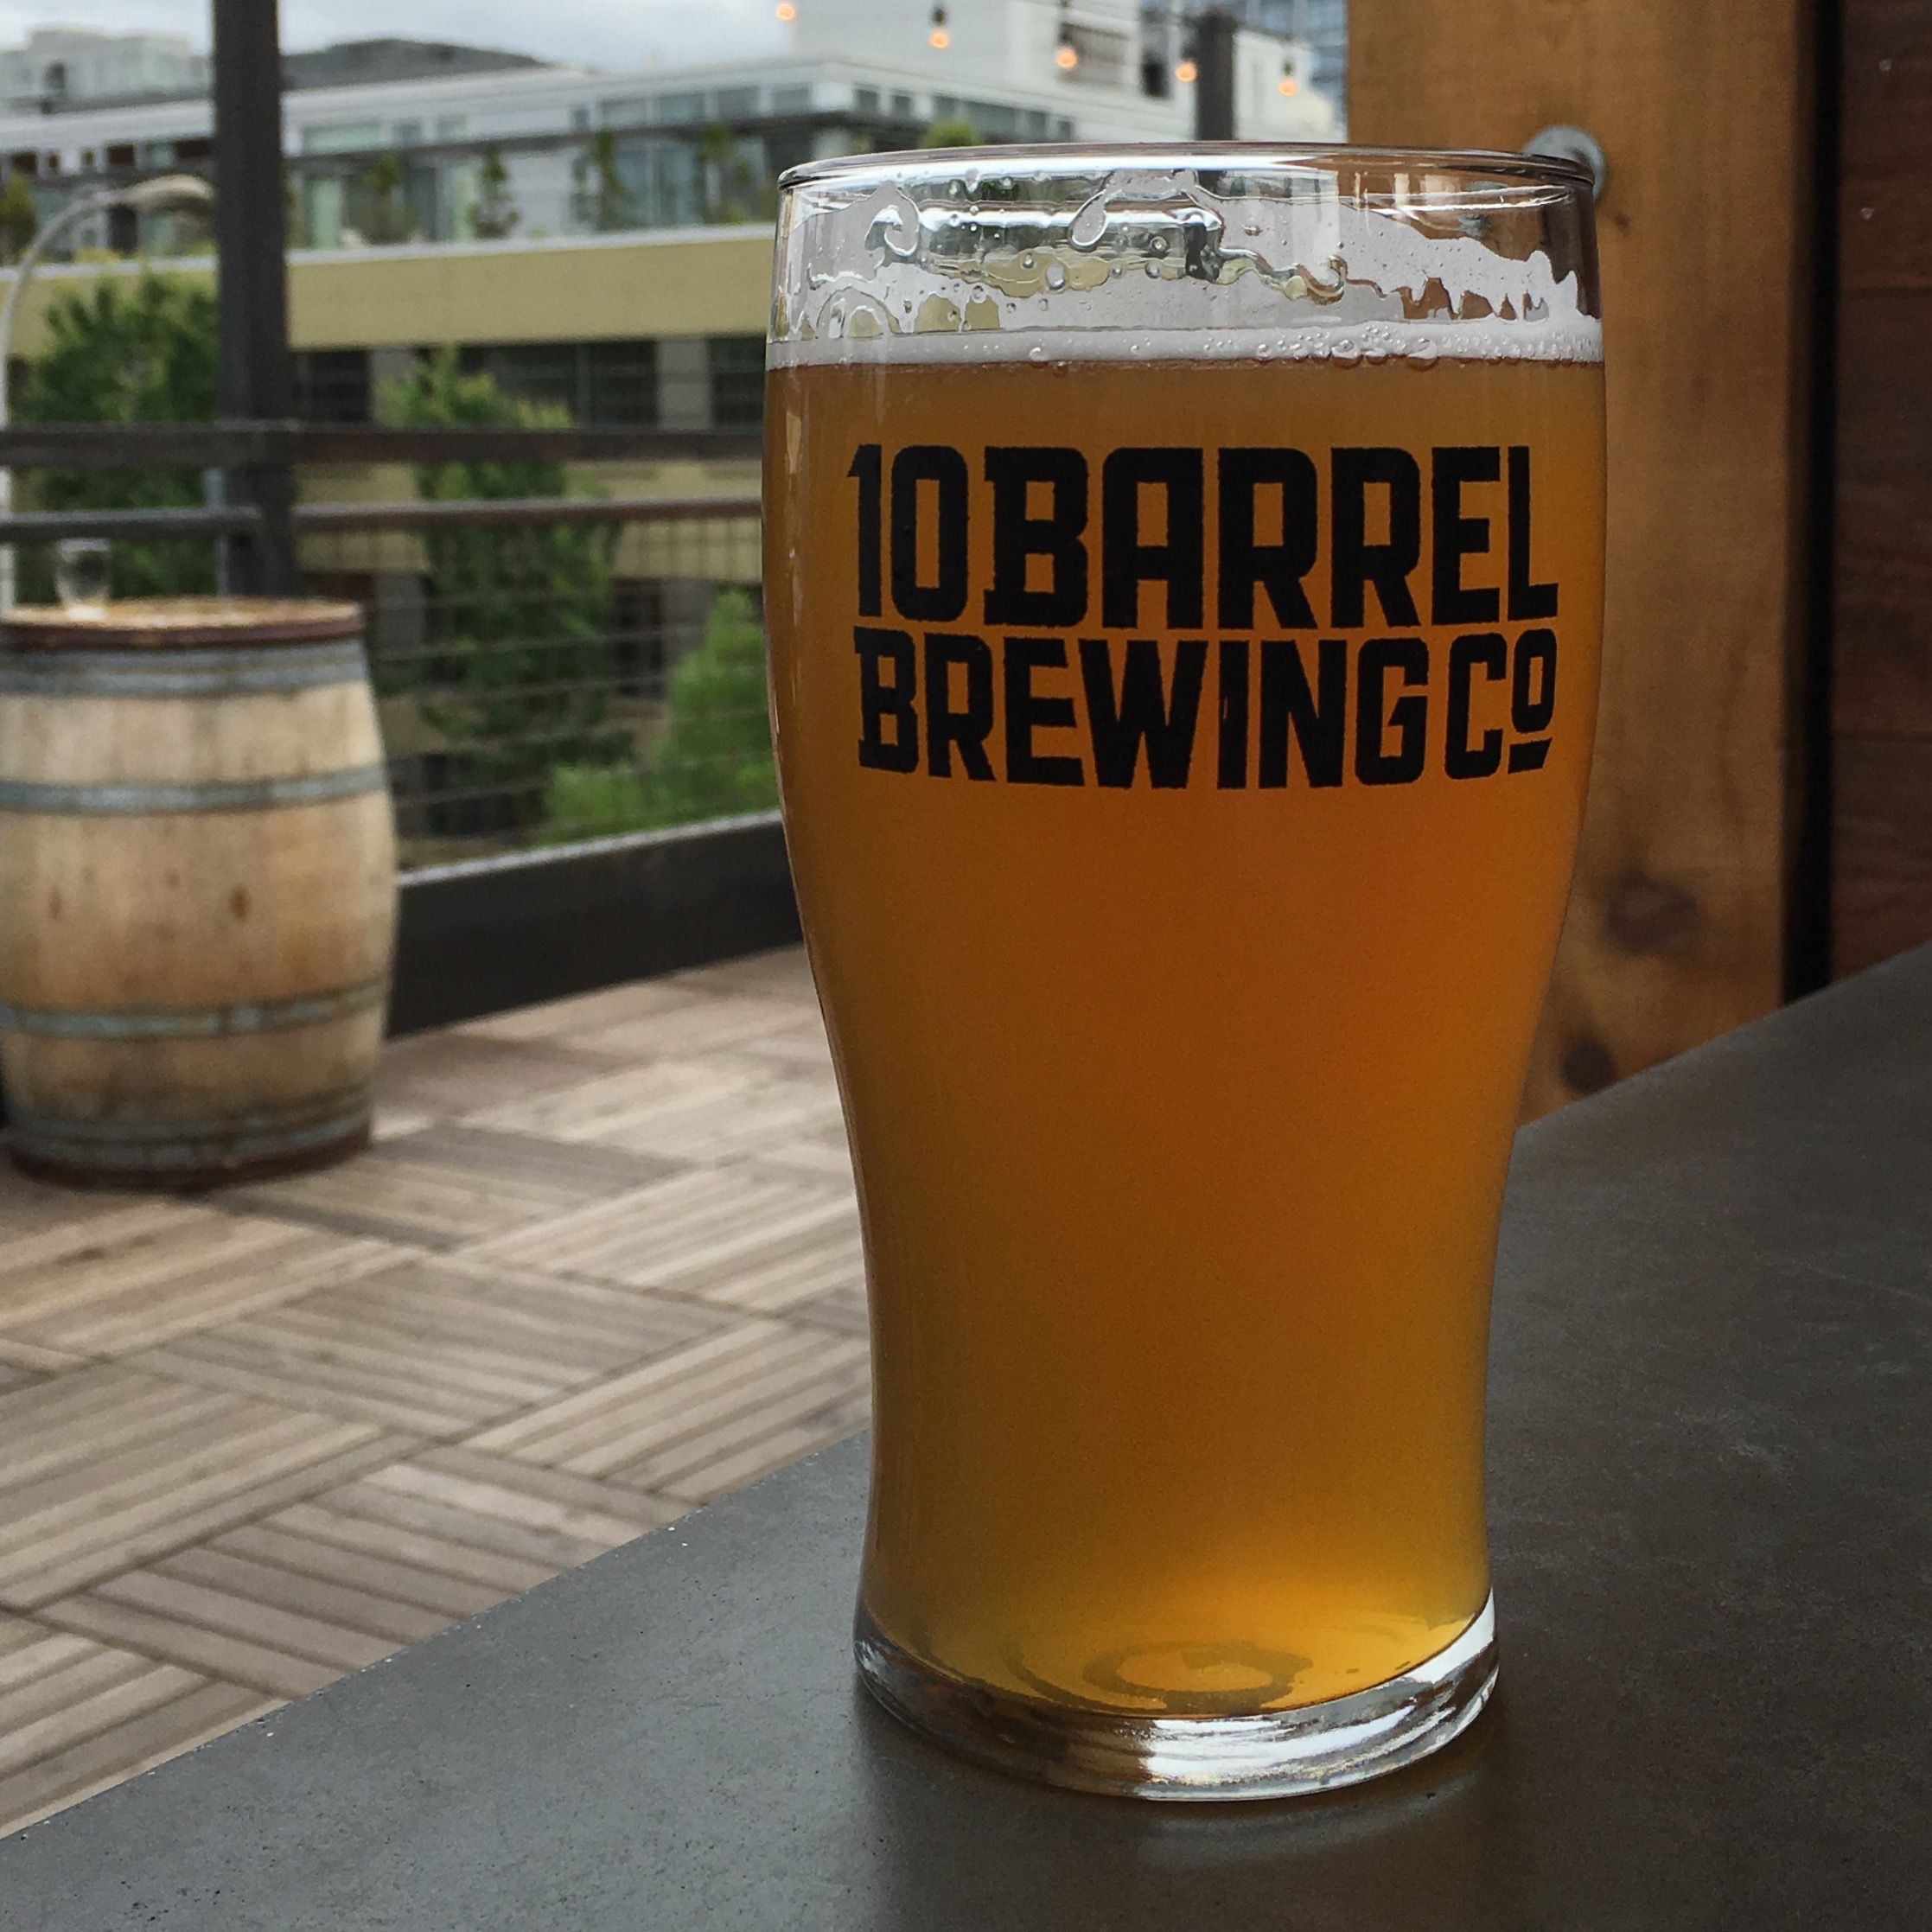 A pint of 10 Barrel Brewing Pina Pineapple Passion Fruit Summer Ale at the new rooftop bar at its pub in Portland.